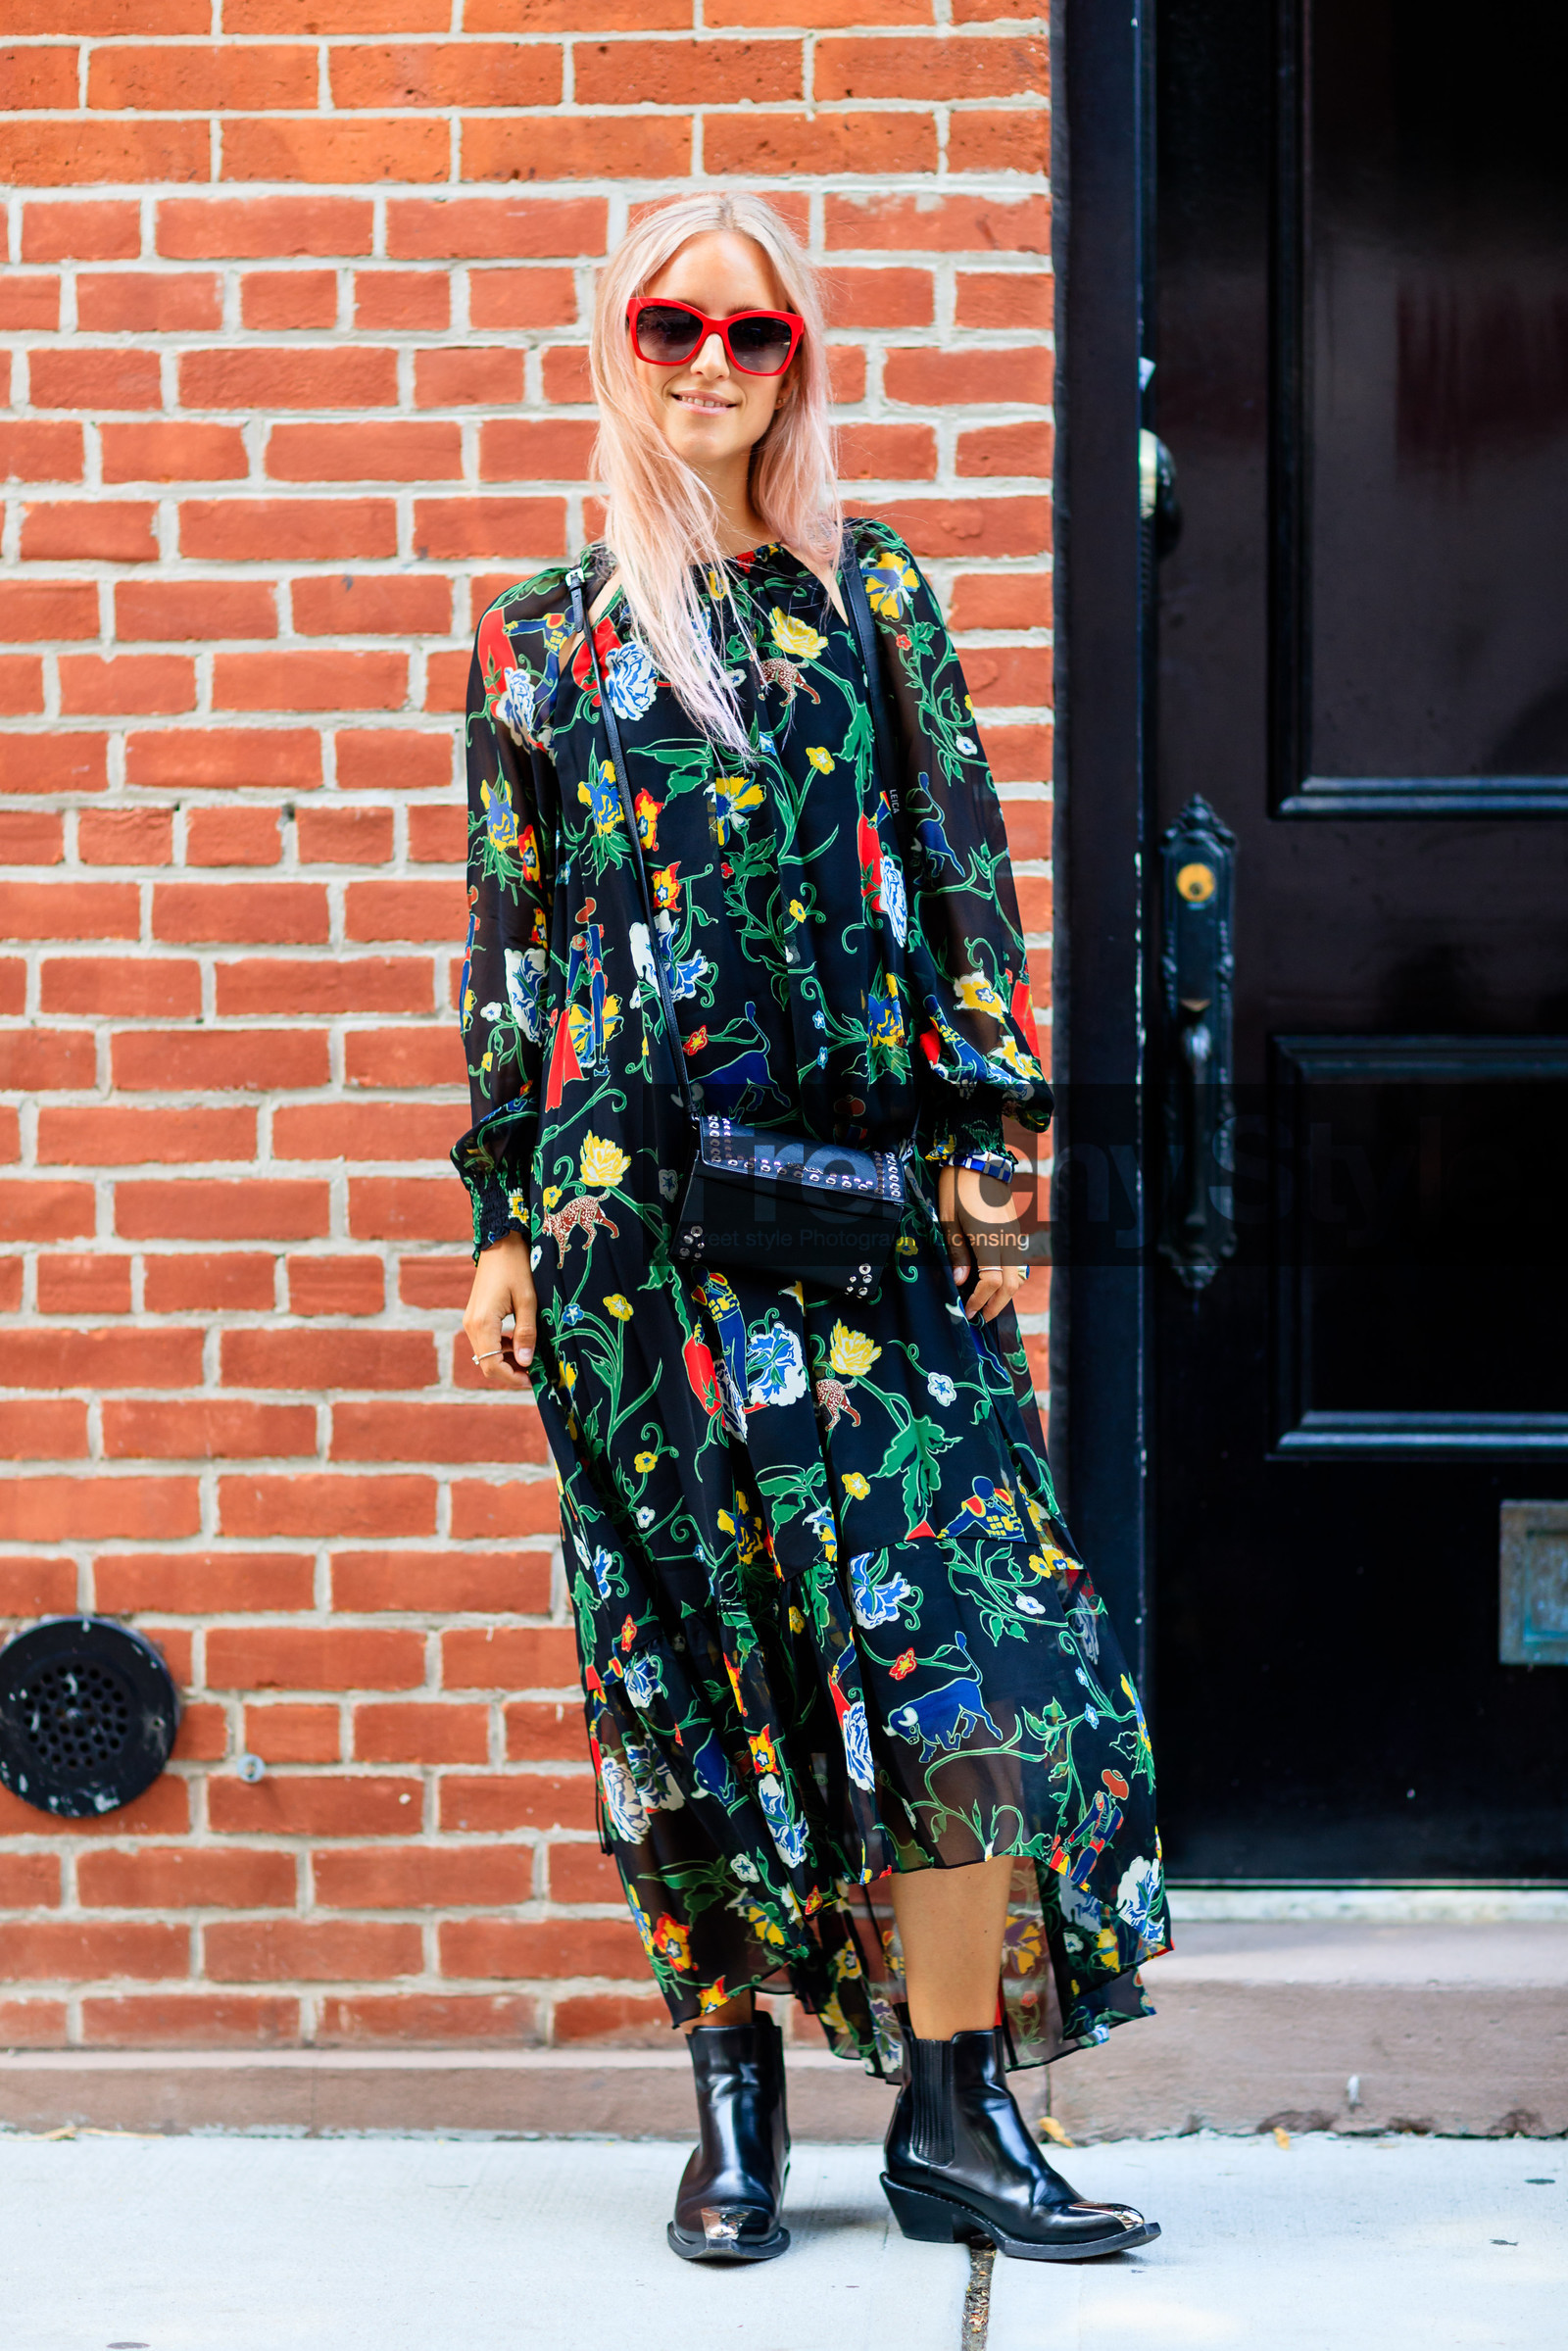 black bag, black boots, black dress, Charlotte Groeneveld, fashion week, flare jean, floral, flower, frenchystyle, full length, FW, jonathan paciullo, leather bag, leather boots, long dress, NEW YORK, NYFW, prada, printed dress, SPRING SUMMER 2017, SS 17, street style, studded bag, sunglasses, vertical, woman